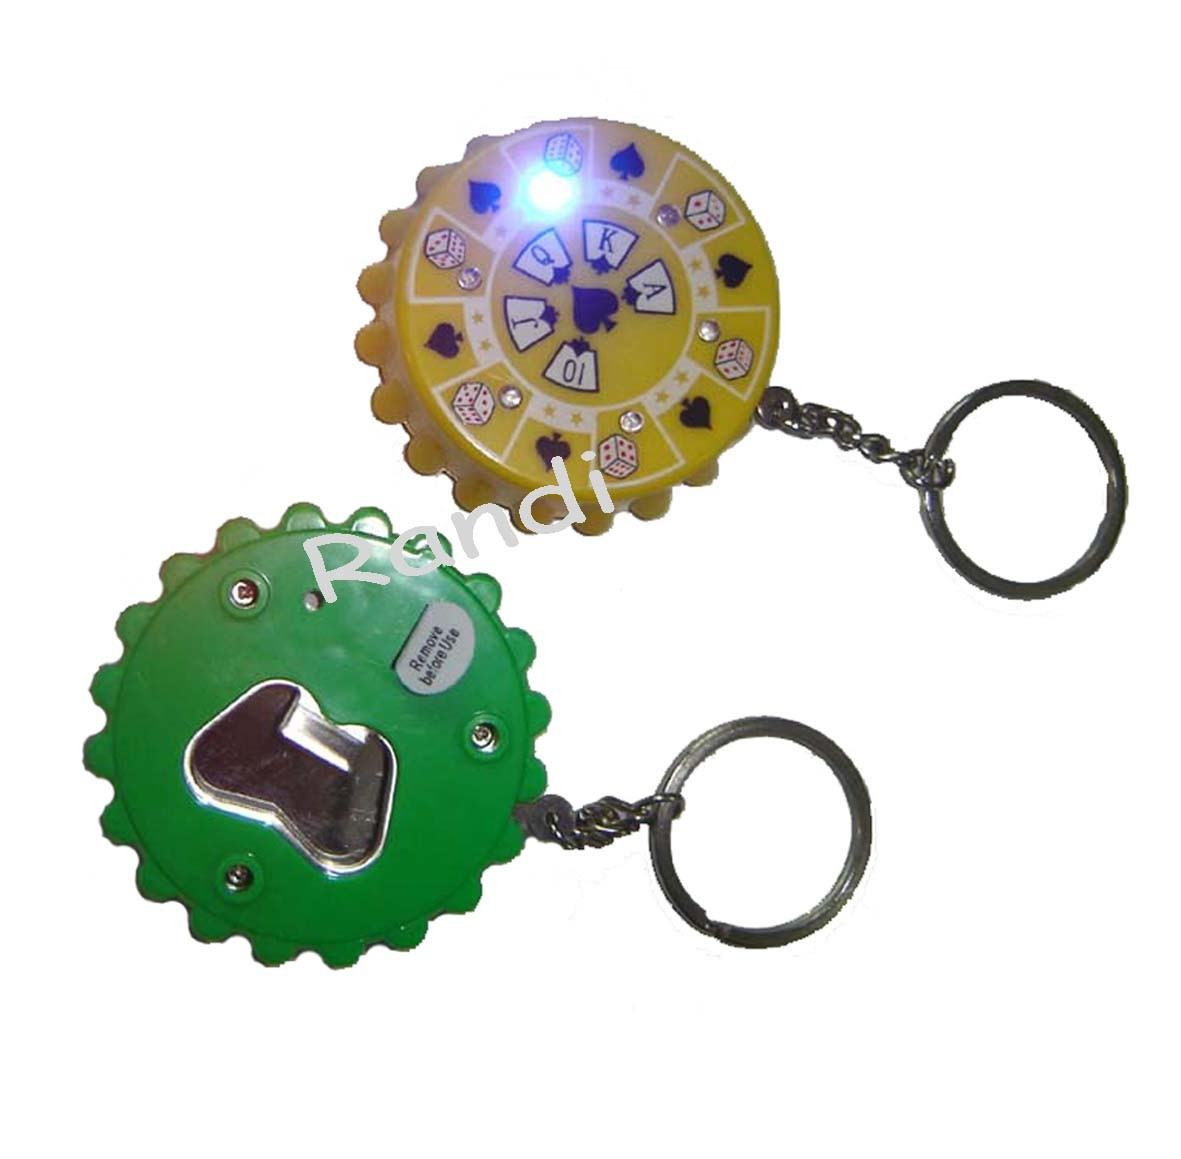 china flashing bottle opener with keychain china funny item bottle opener. Black Bedroom Furniture Sets. Home Design Ideas